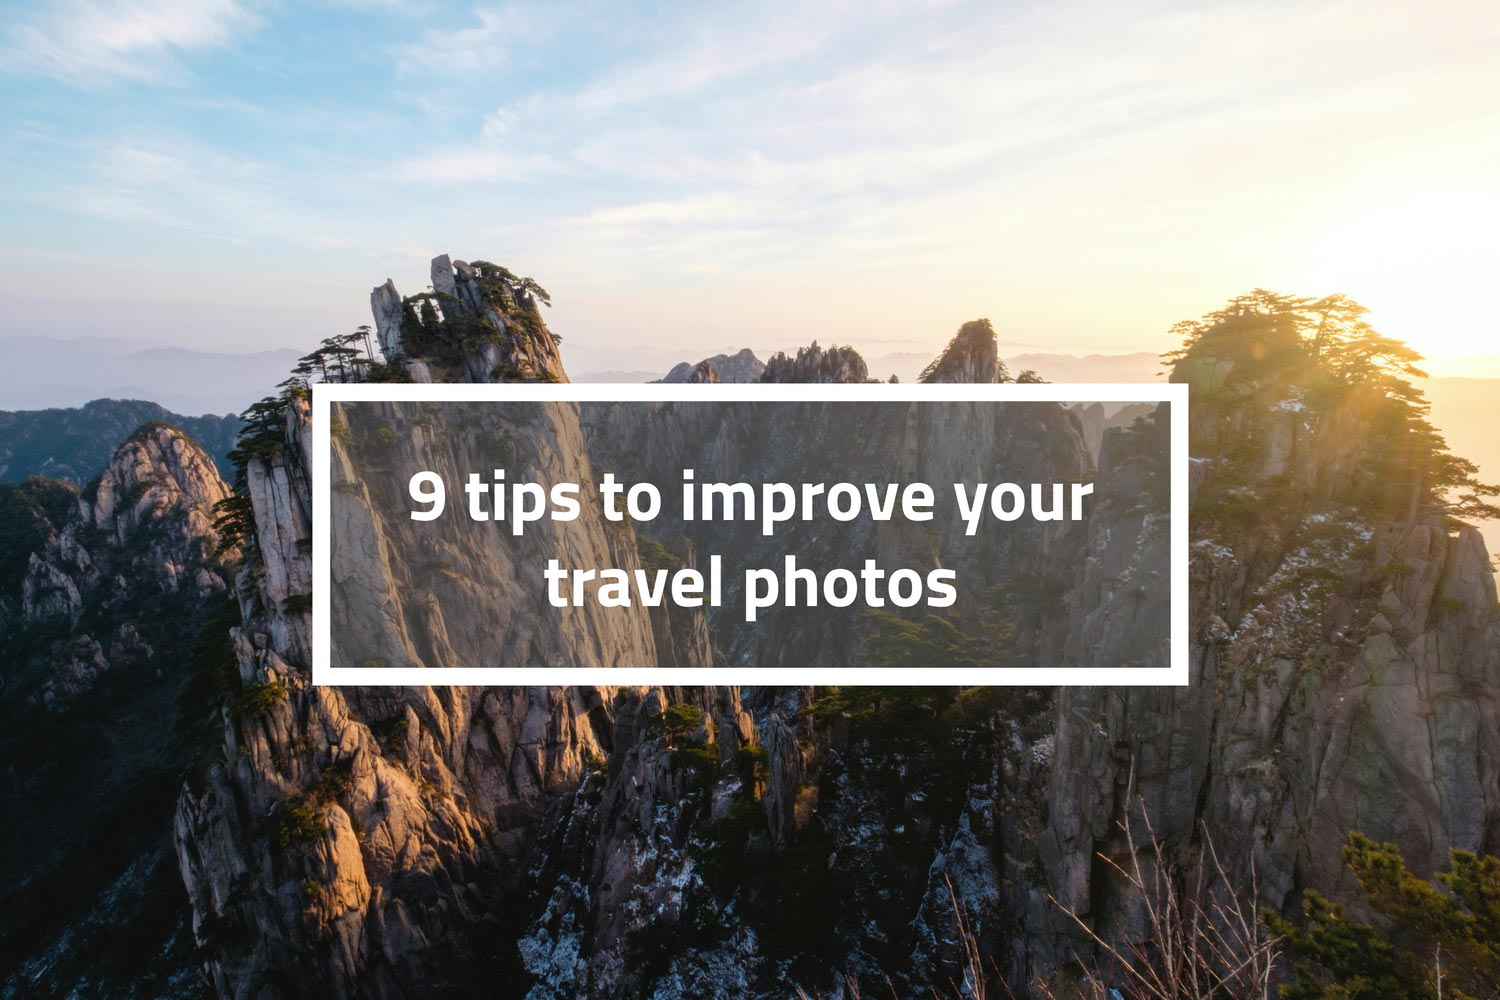 improve your travel photos